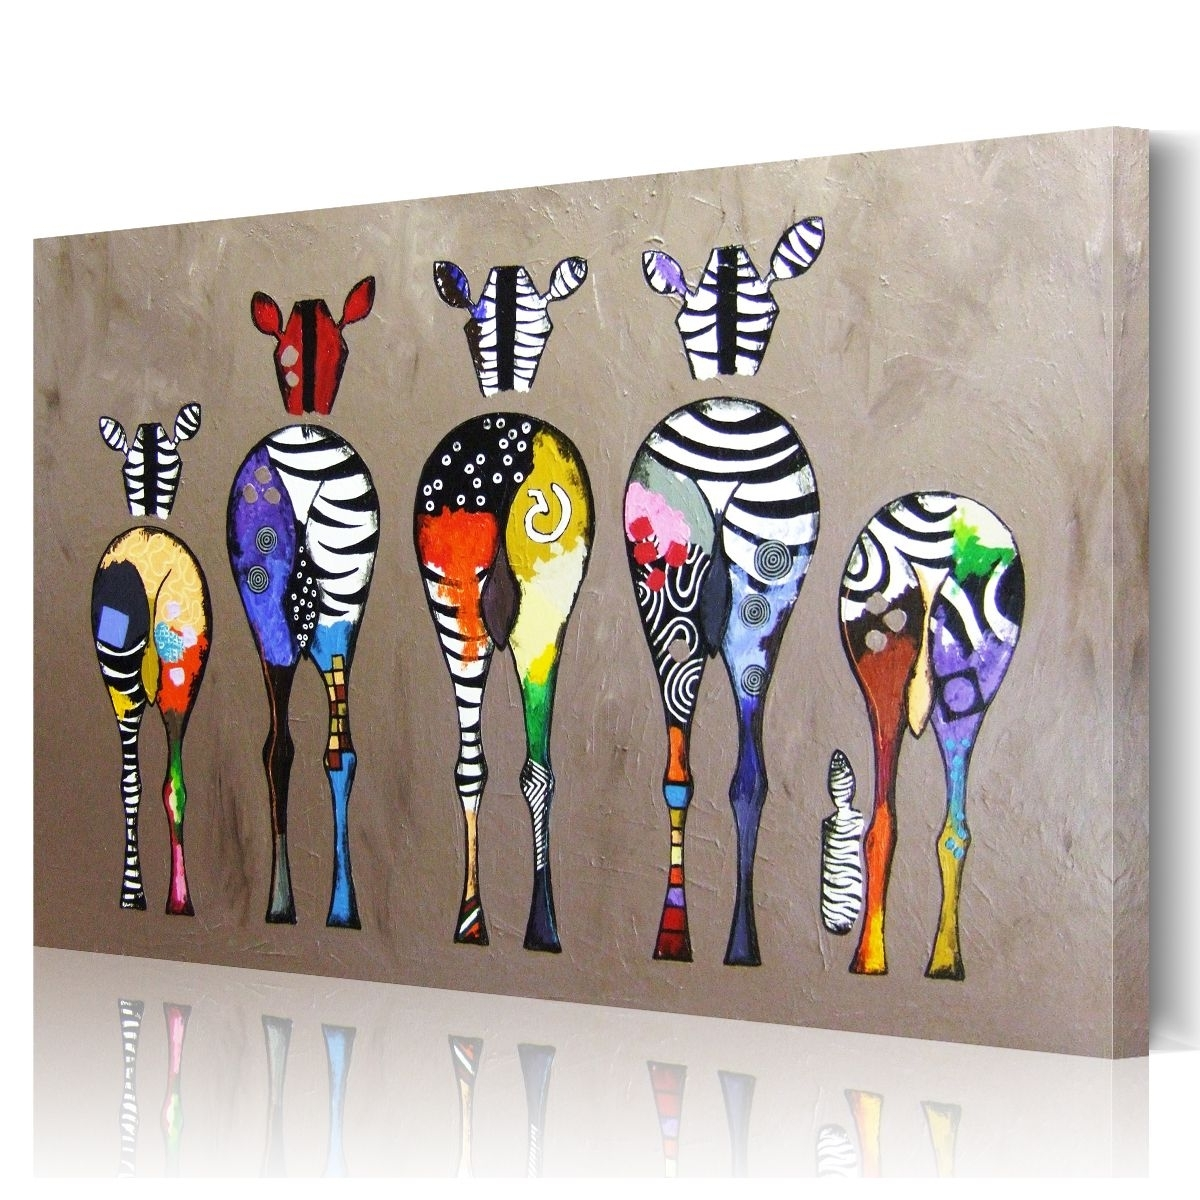 Hd Abstract Zebra Canvas Prints Paintings Wall Art Home Decor With Regard To Newest Zebra Canvas Wall Art (View 6 of 20)